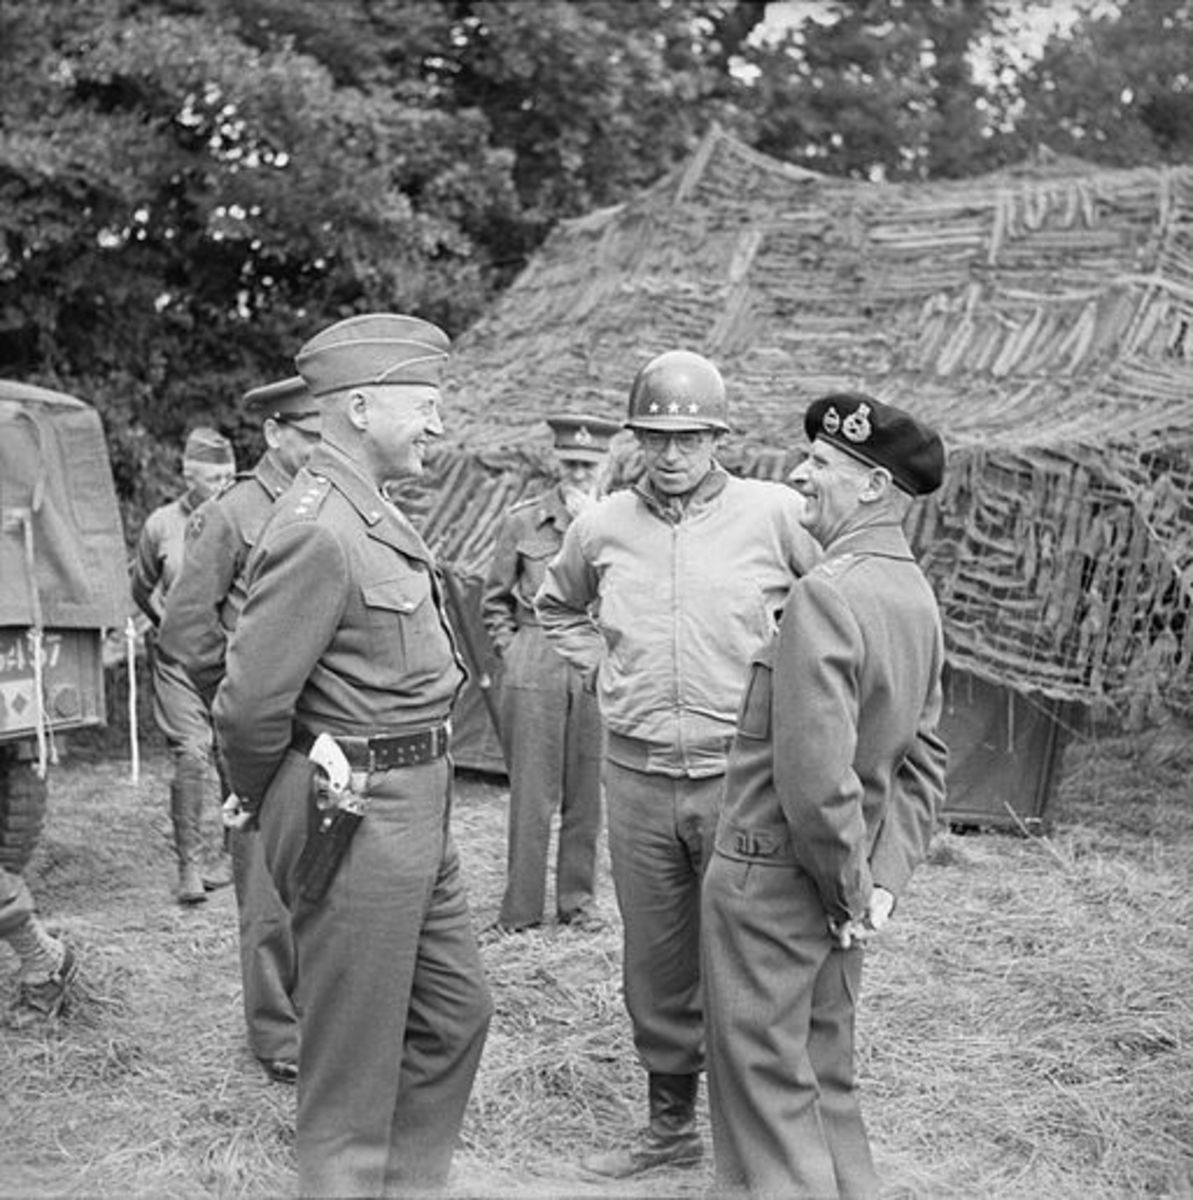 Generals Patton, Bradley and Montgomery - in a good mood in 1944